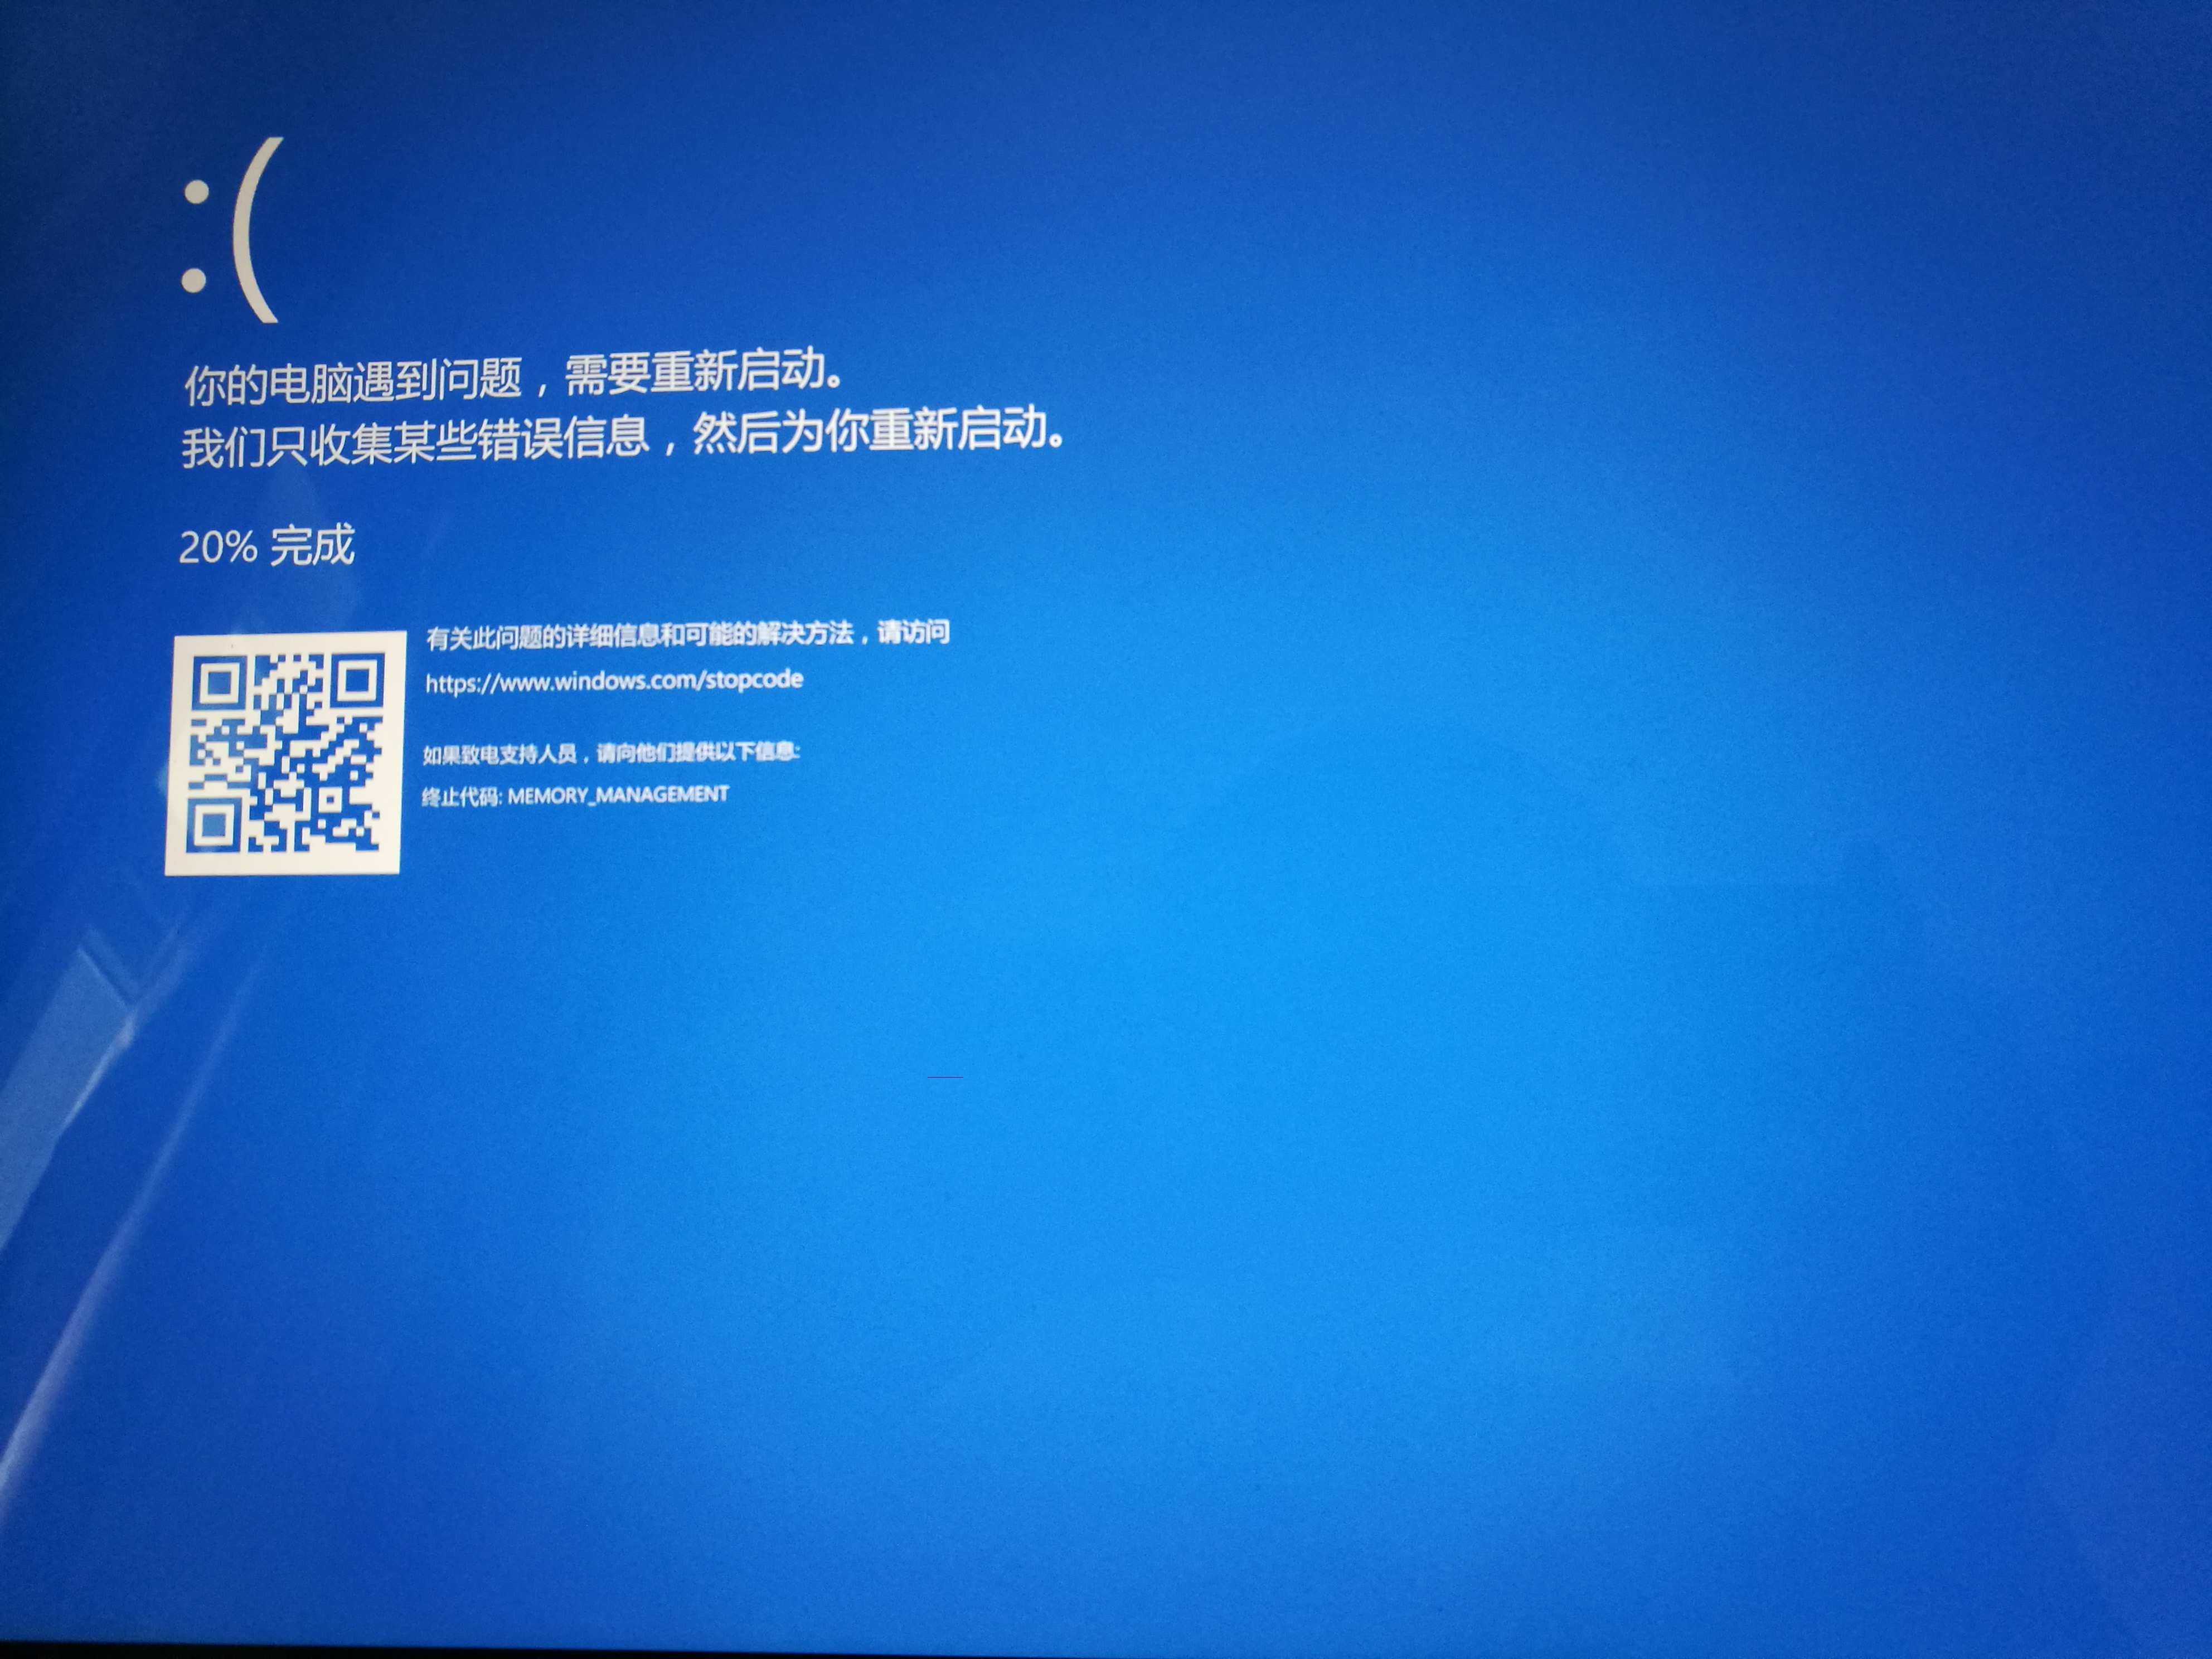 haxm causes win10 1804 bsod when i shutting down my computer issue